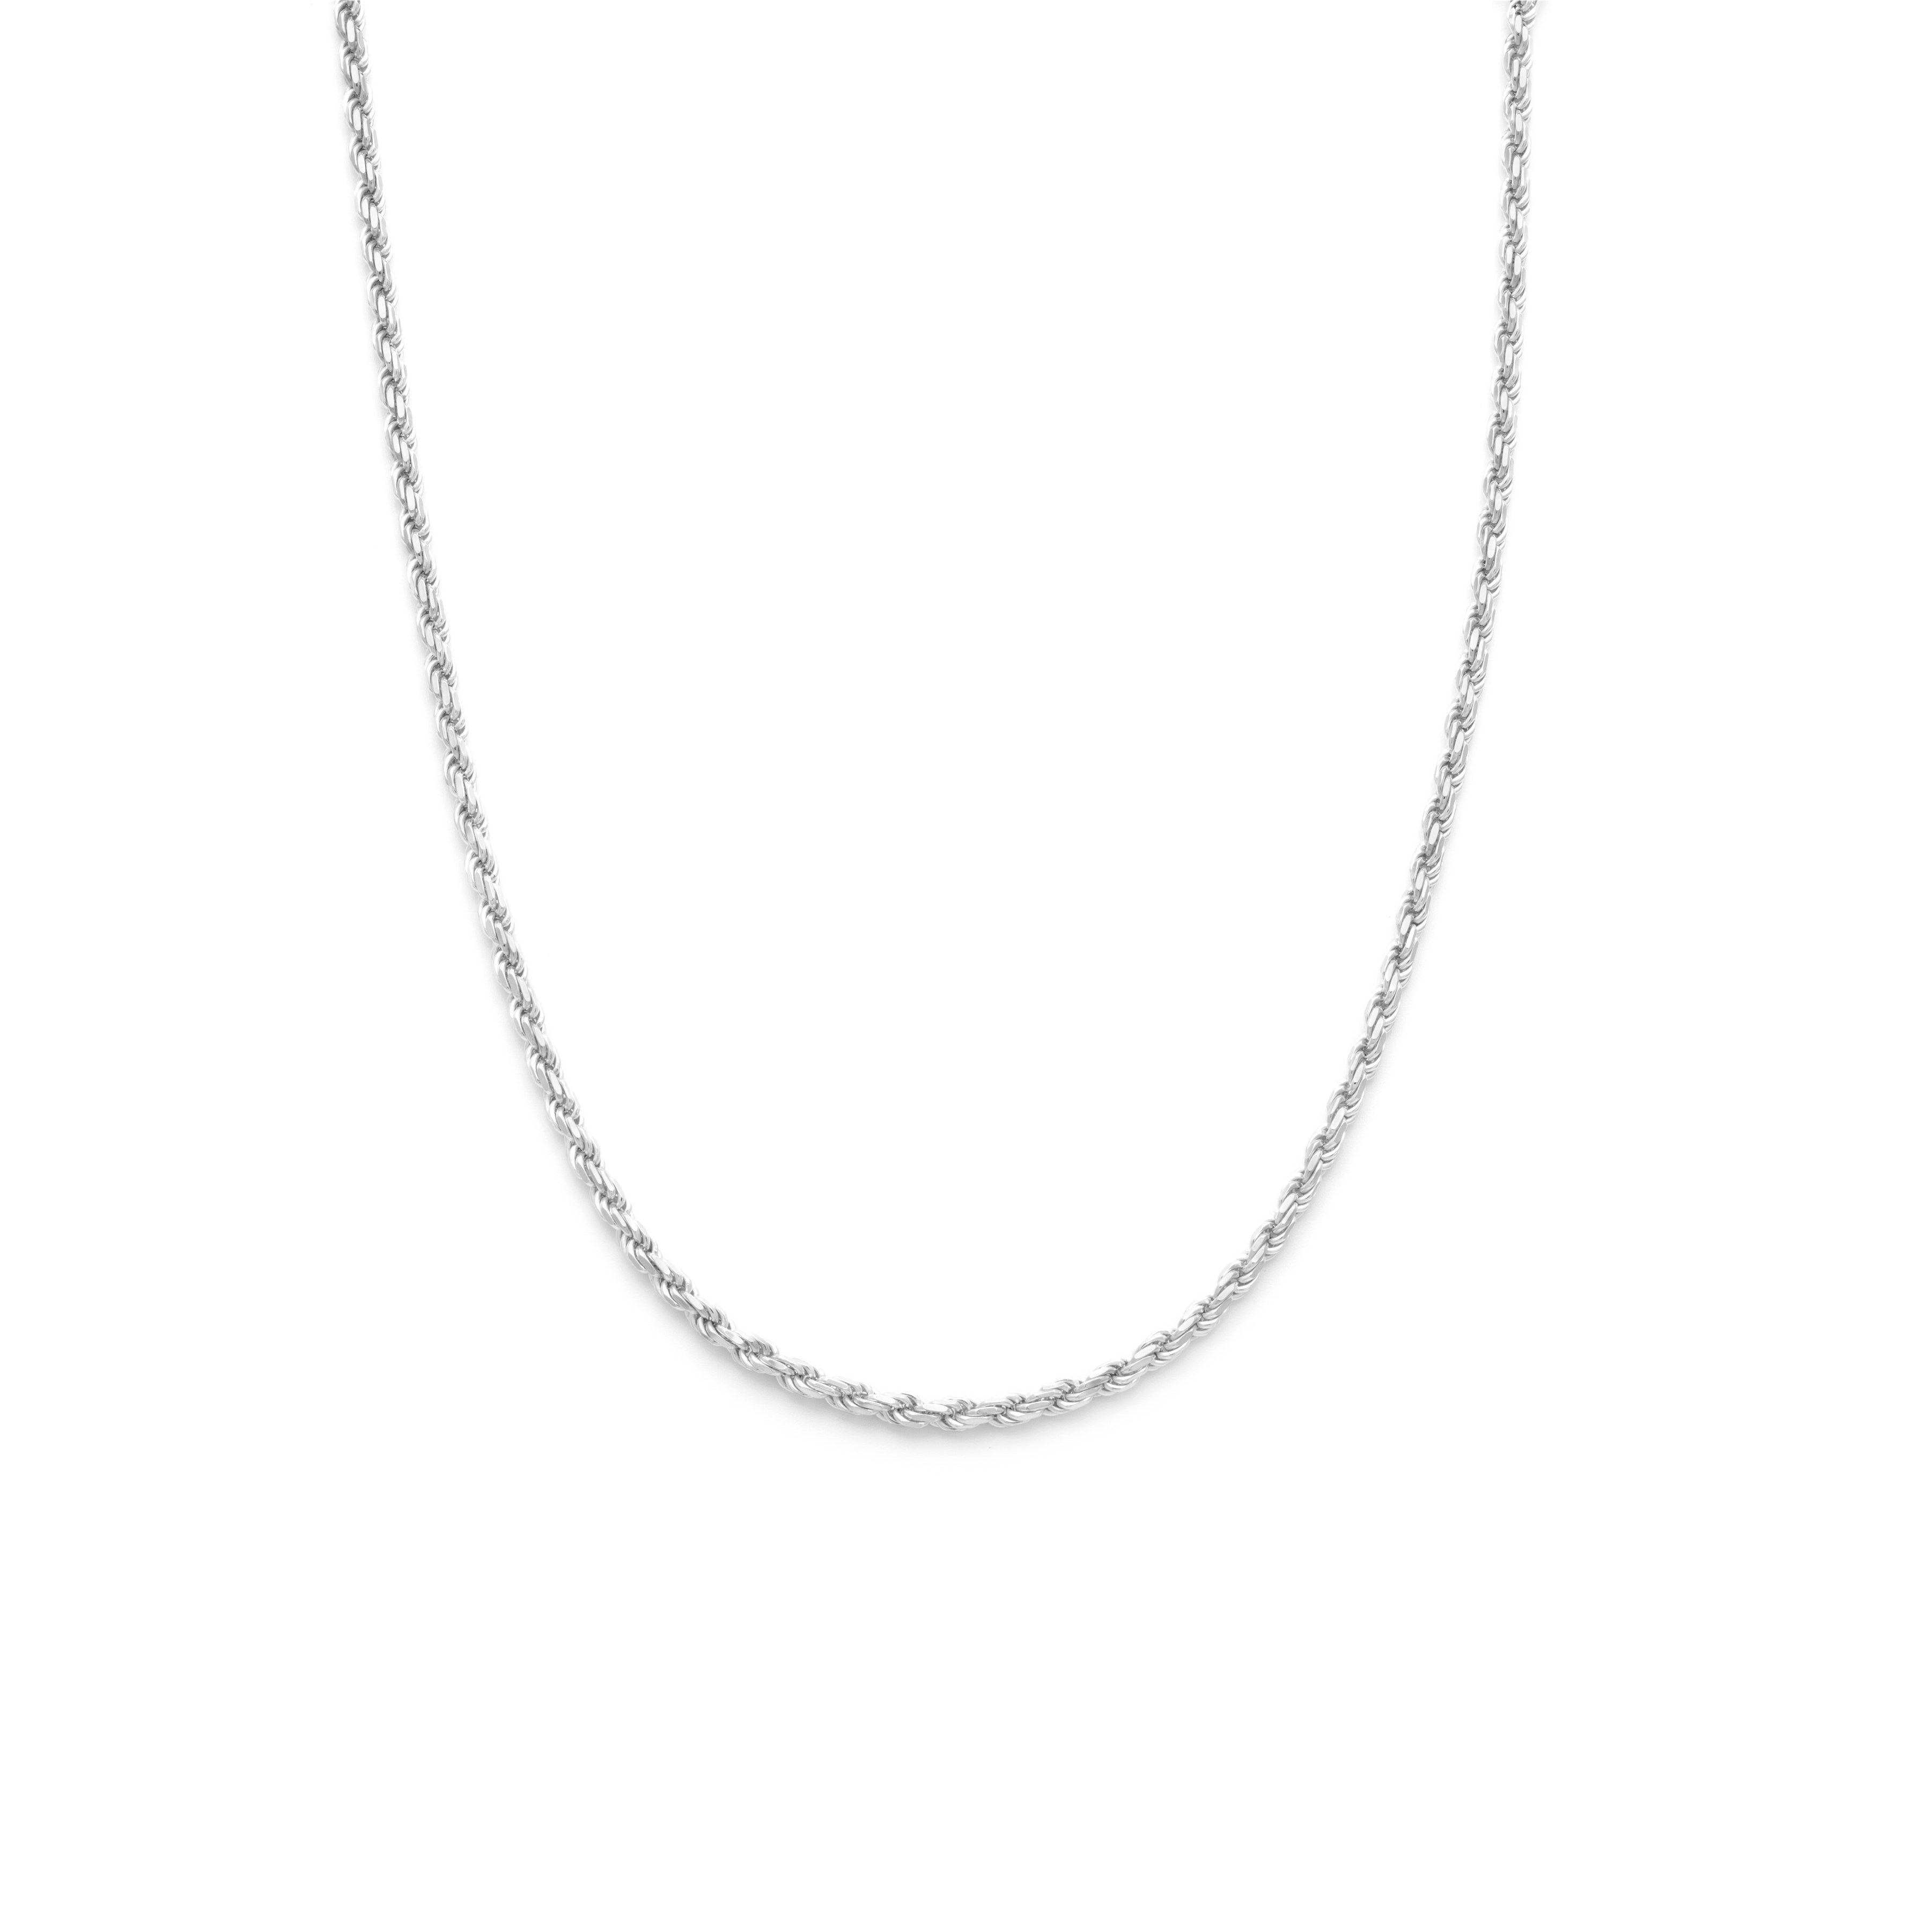 Medium Rope Chain - Sterling Silver